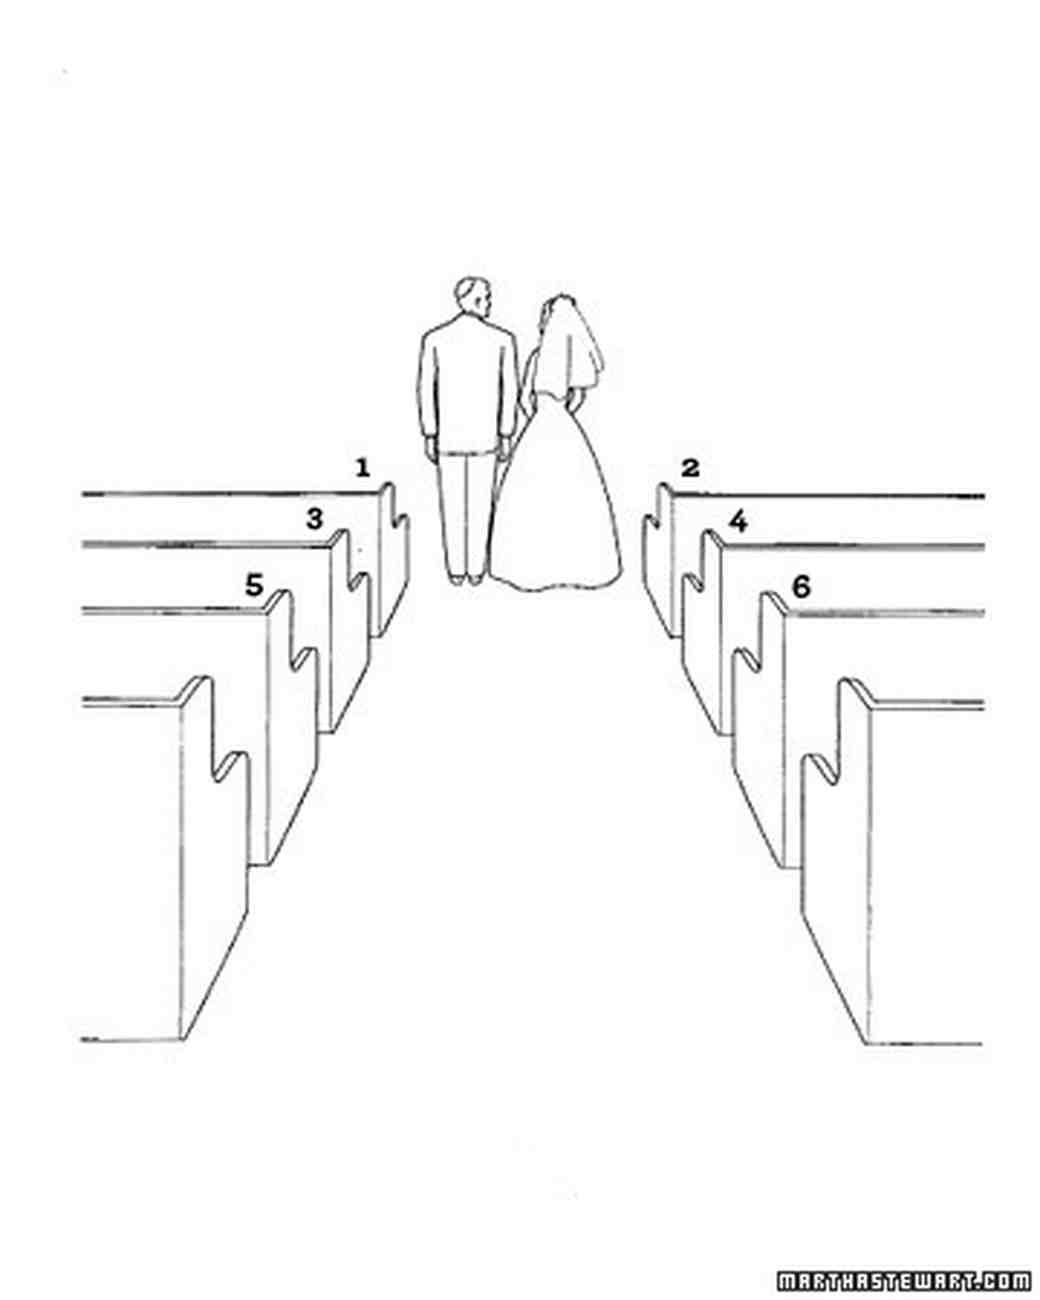 Diagram Your Big Day Jewish Wedding Ceremony Basics Martha